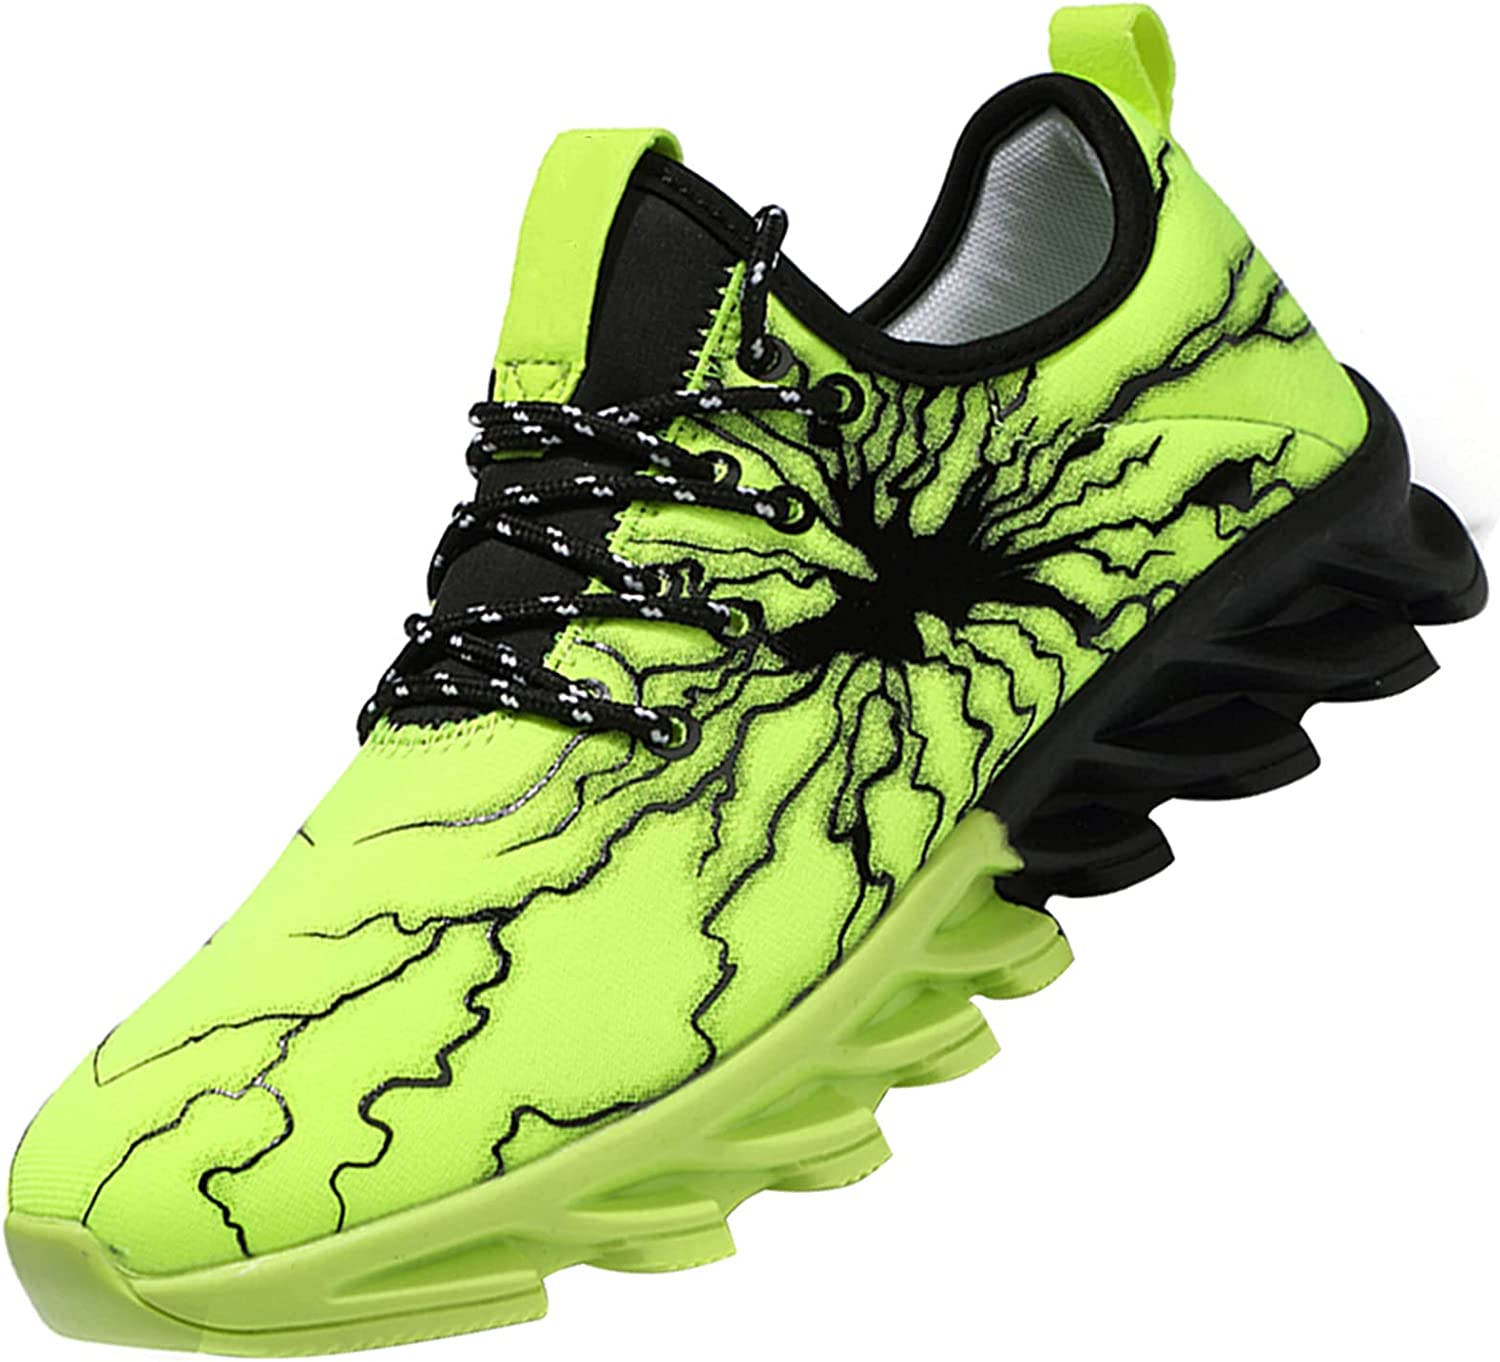 MUOU Men's Road sale Running Shoes Sneaker Sport Athletic Max 75% OFF Lightweight